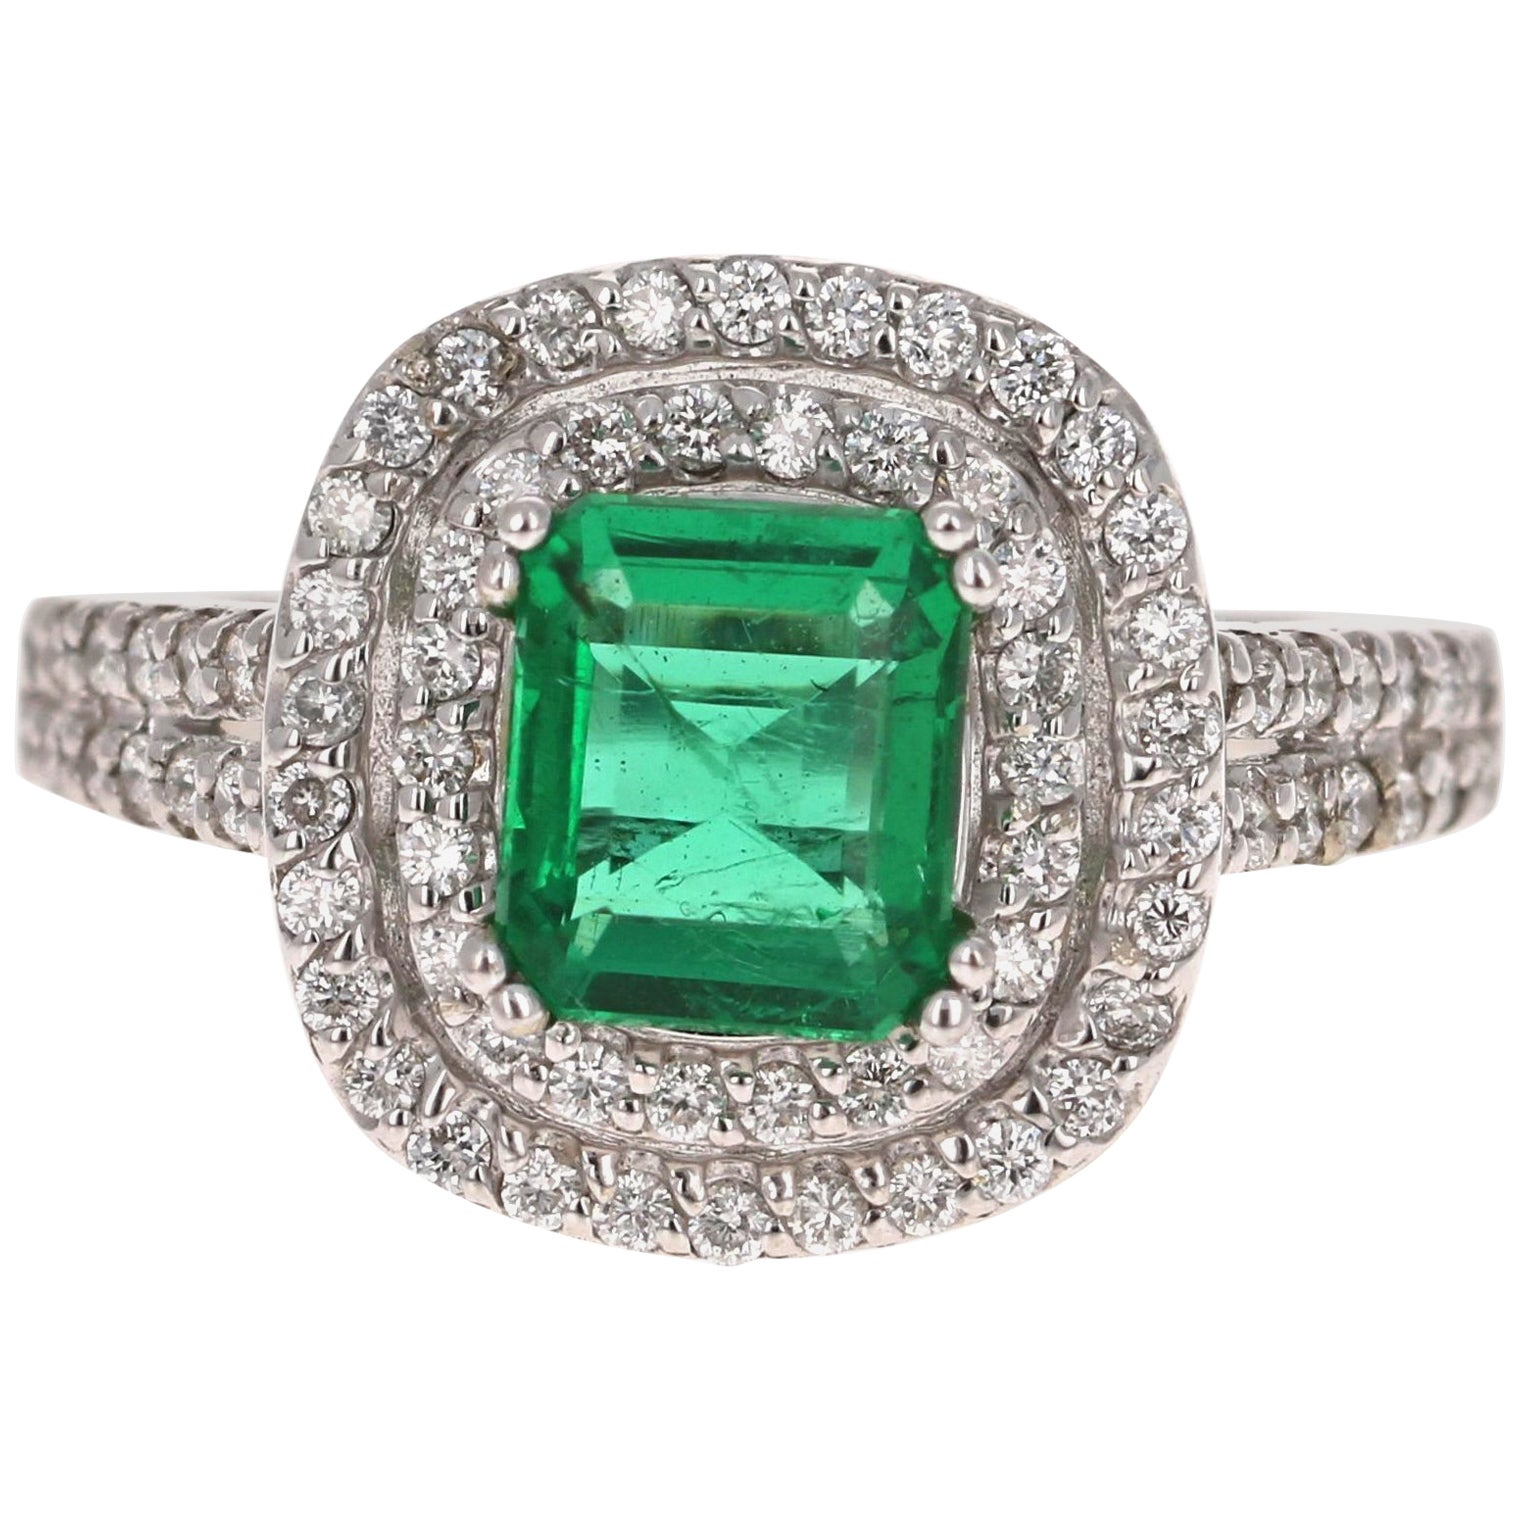 1.96 Carat Emerald Diamond 14 Karat White Gold GIA Certified Ring